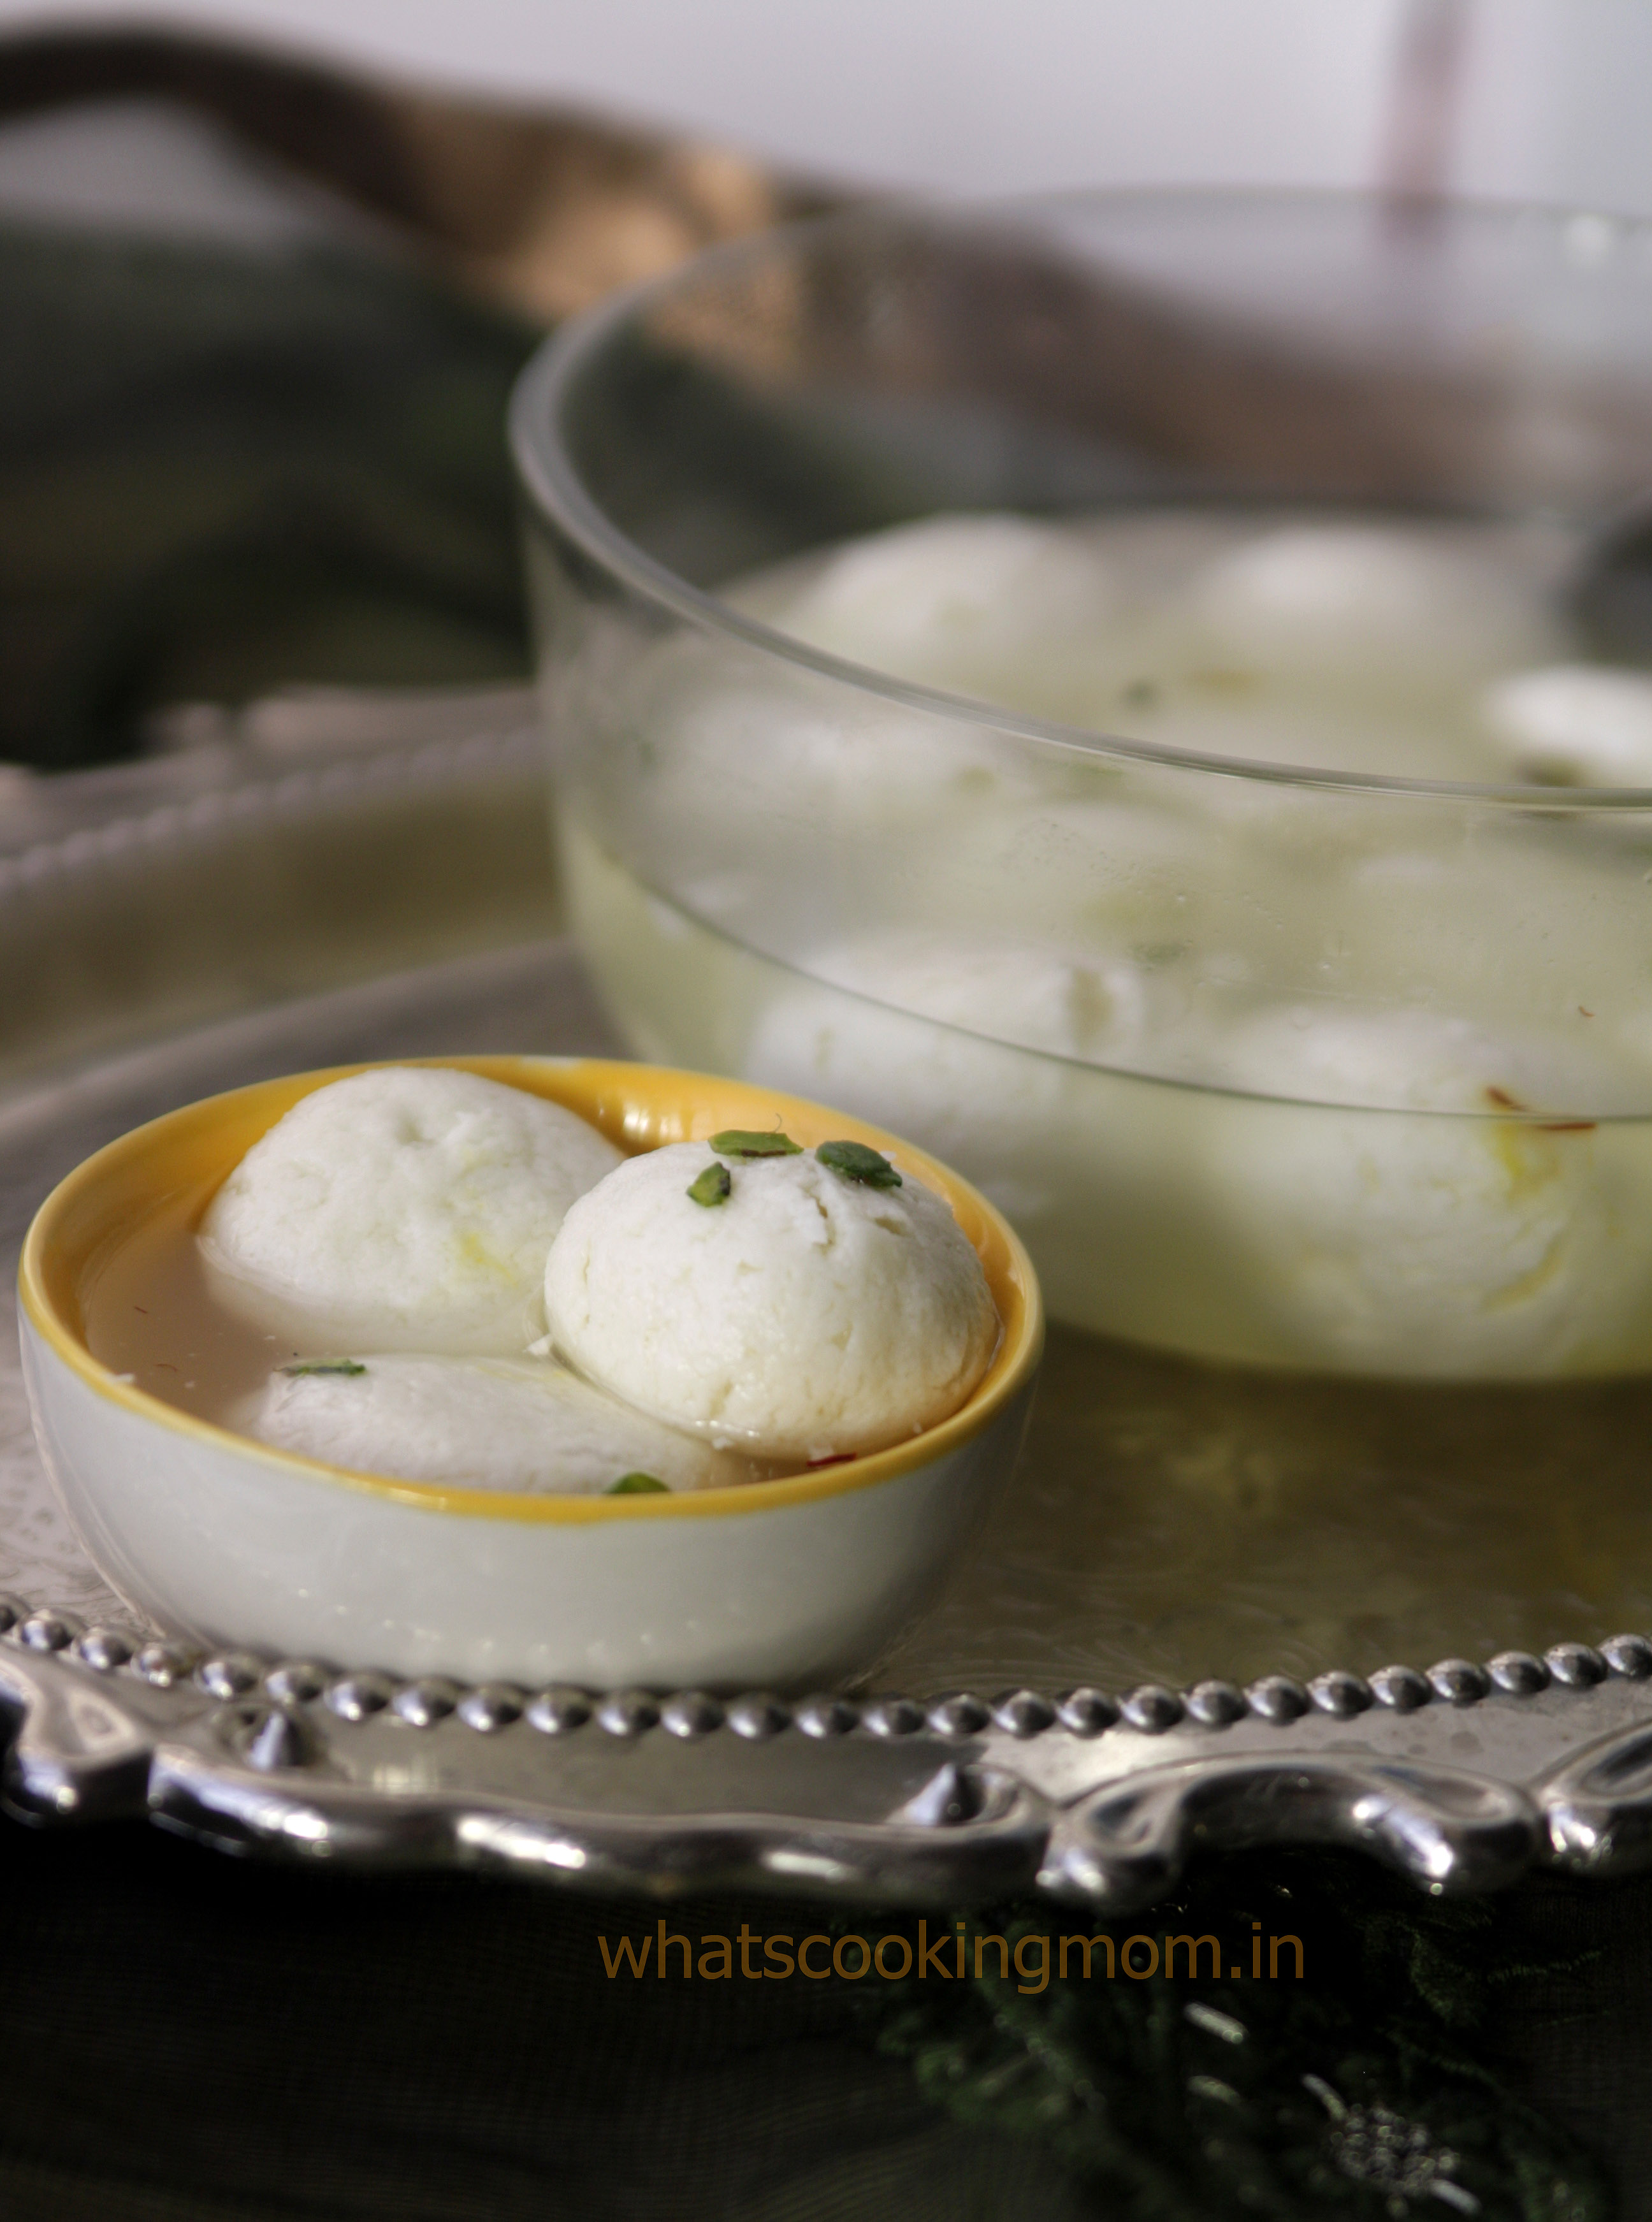 rasgulla - a very popular Indian Sweet